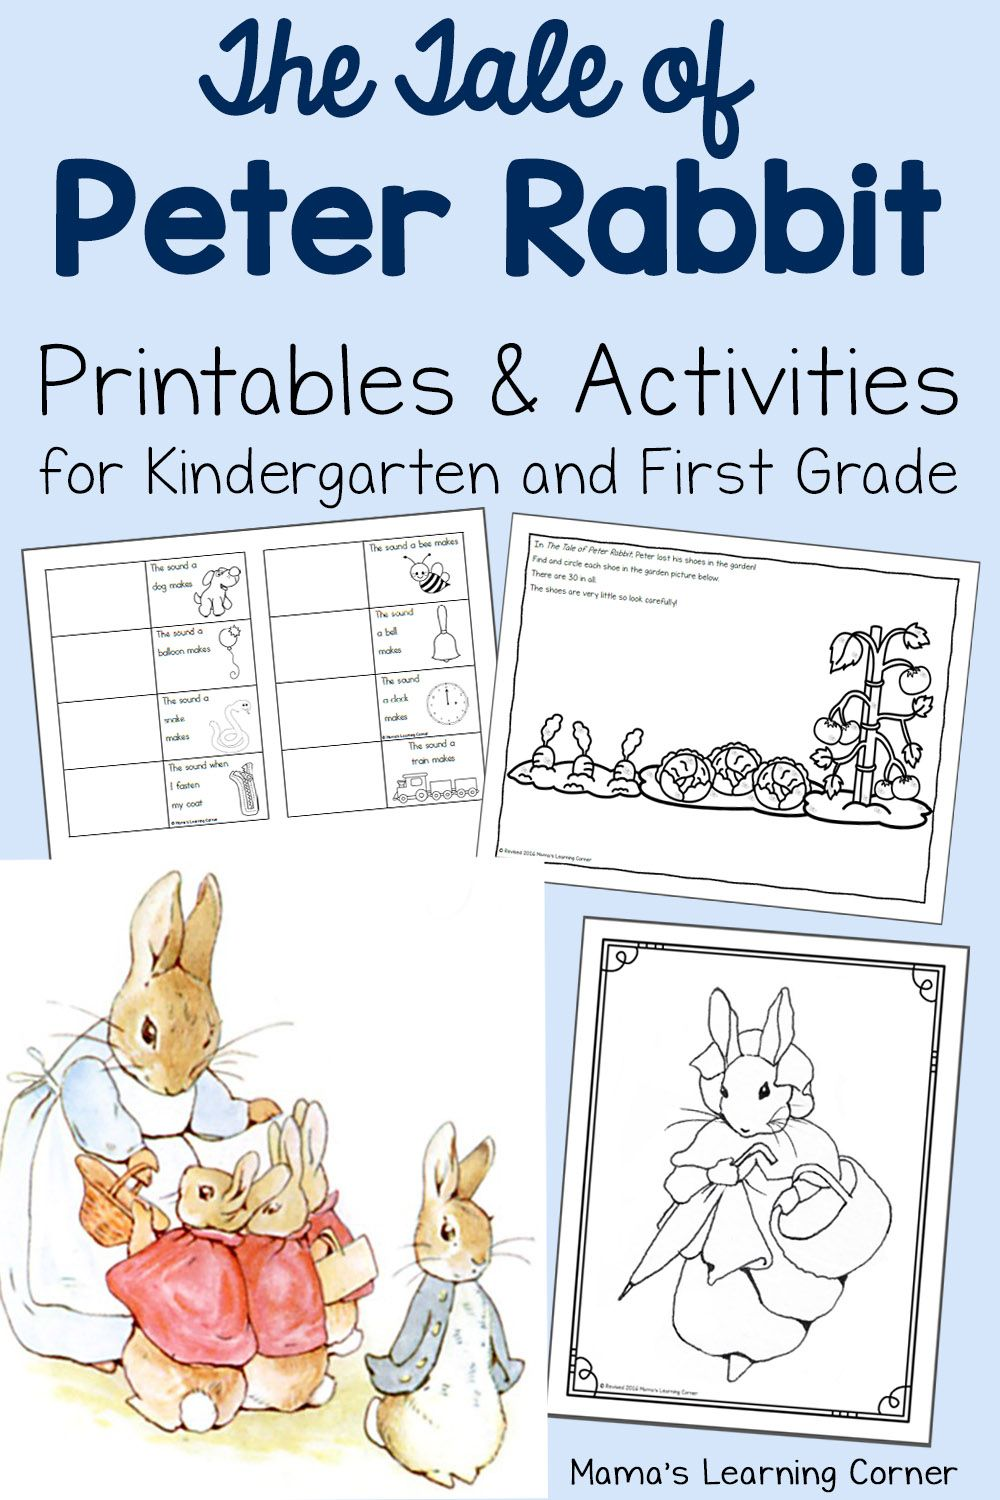 The Tale of Peter Rabbit Printables | Lengua, Conejo y Pecas